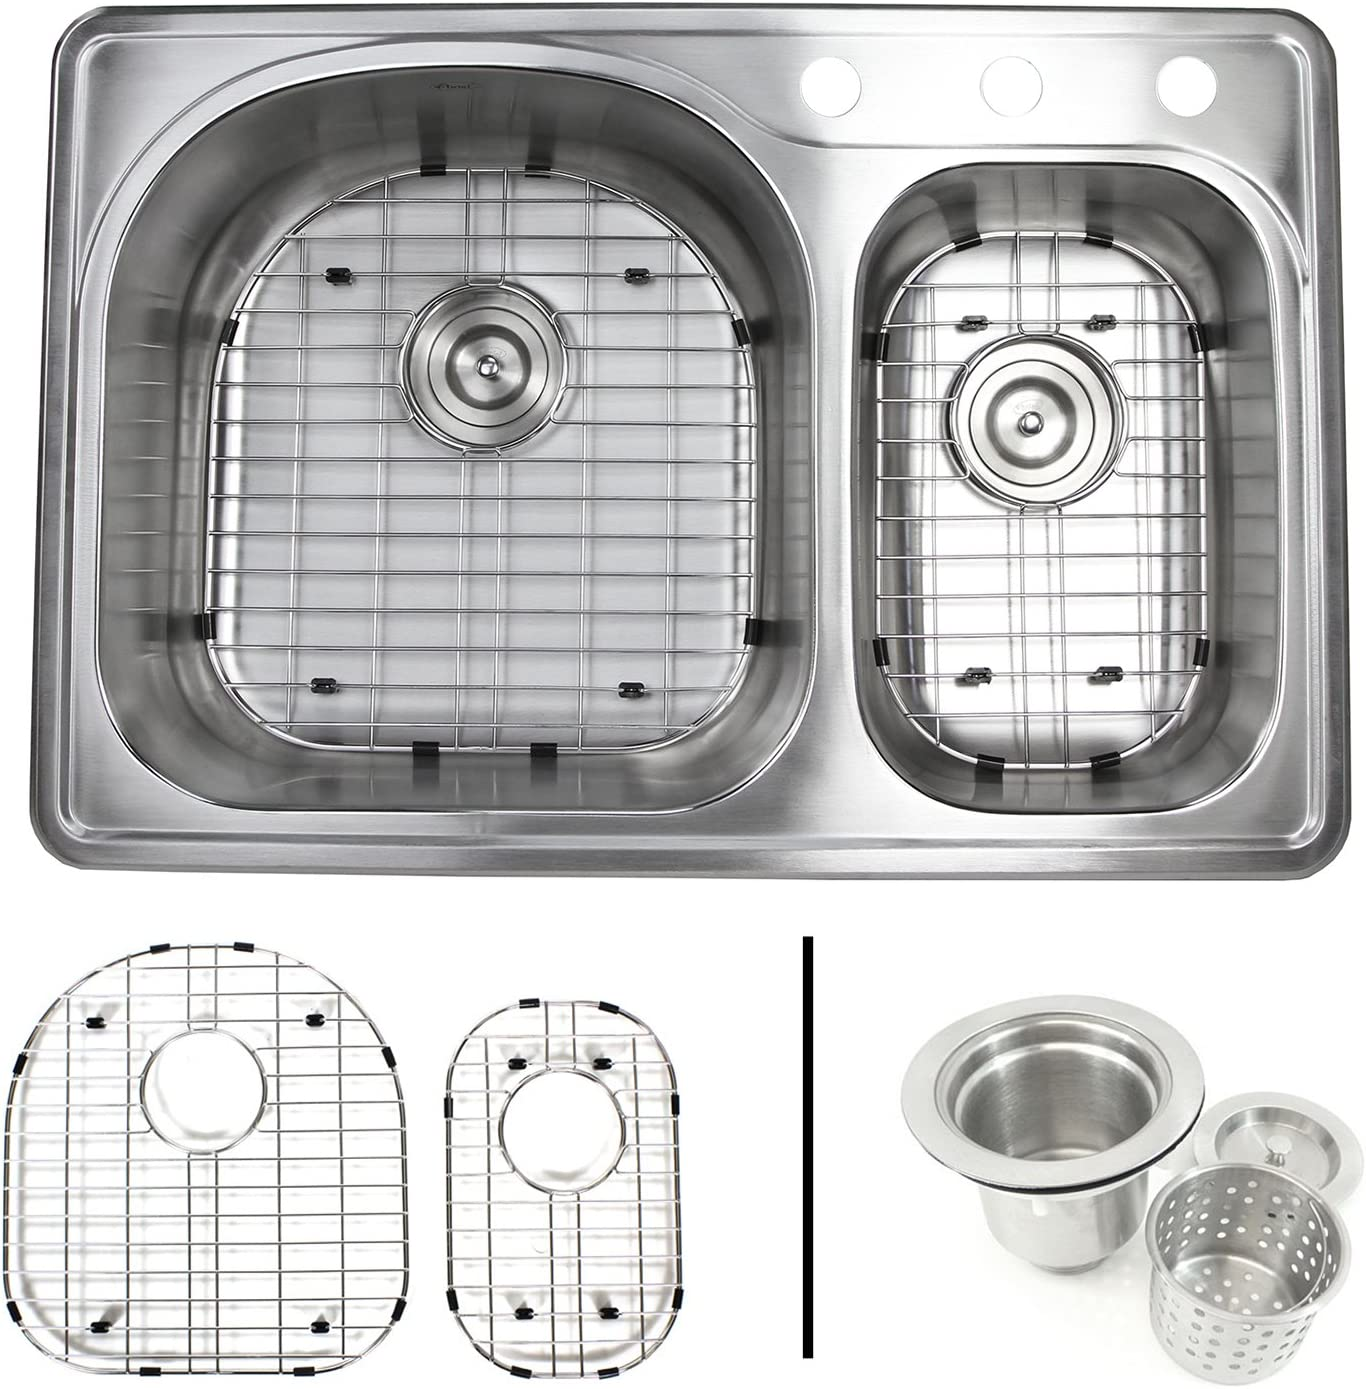 33 Inch Top-mount Drop-in Stainless Steel 70 30 Double Bowl Kitchen Sink With 3 Faucet Holes – 18 Gauge with Accessories